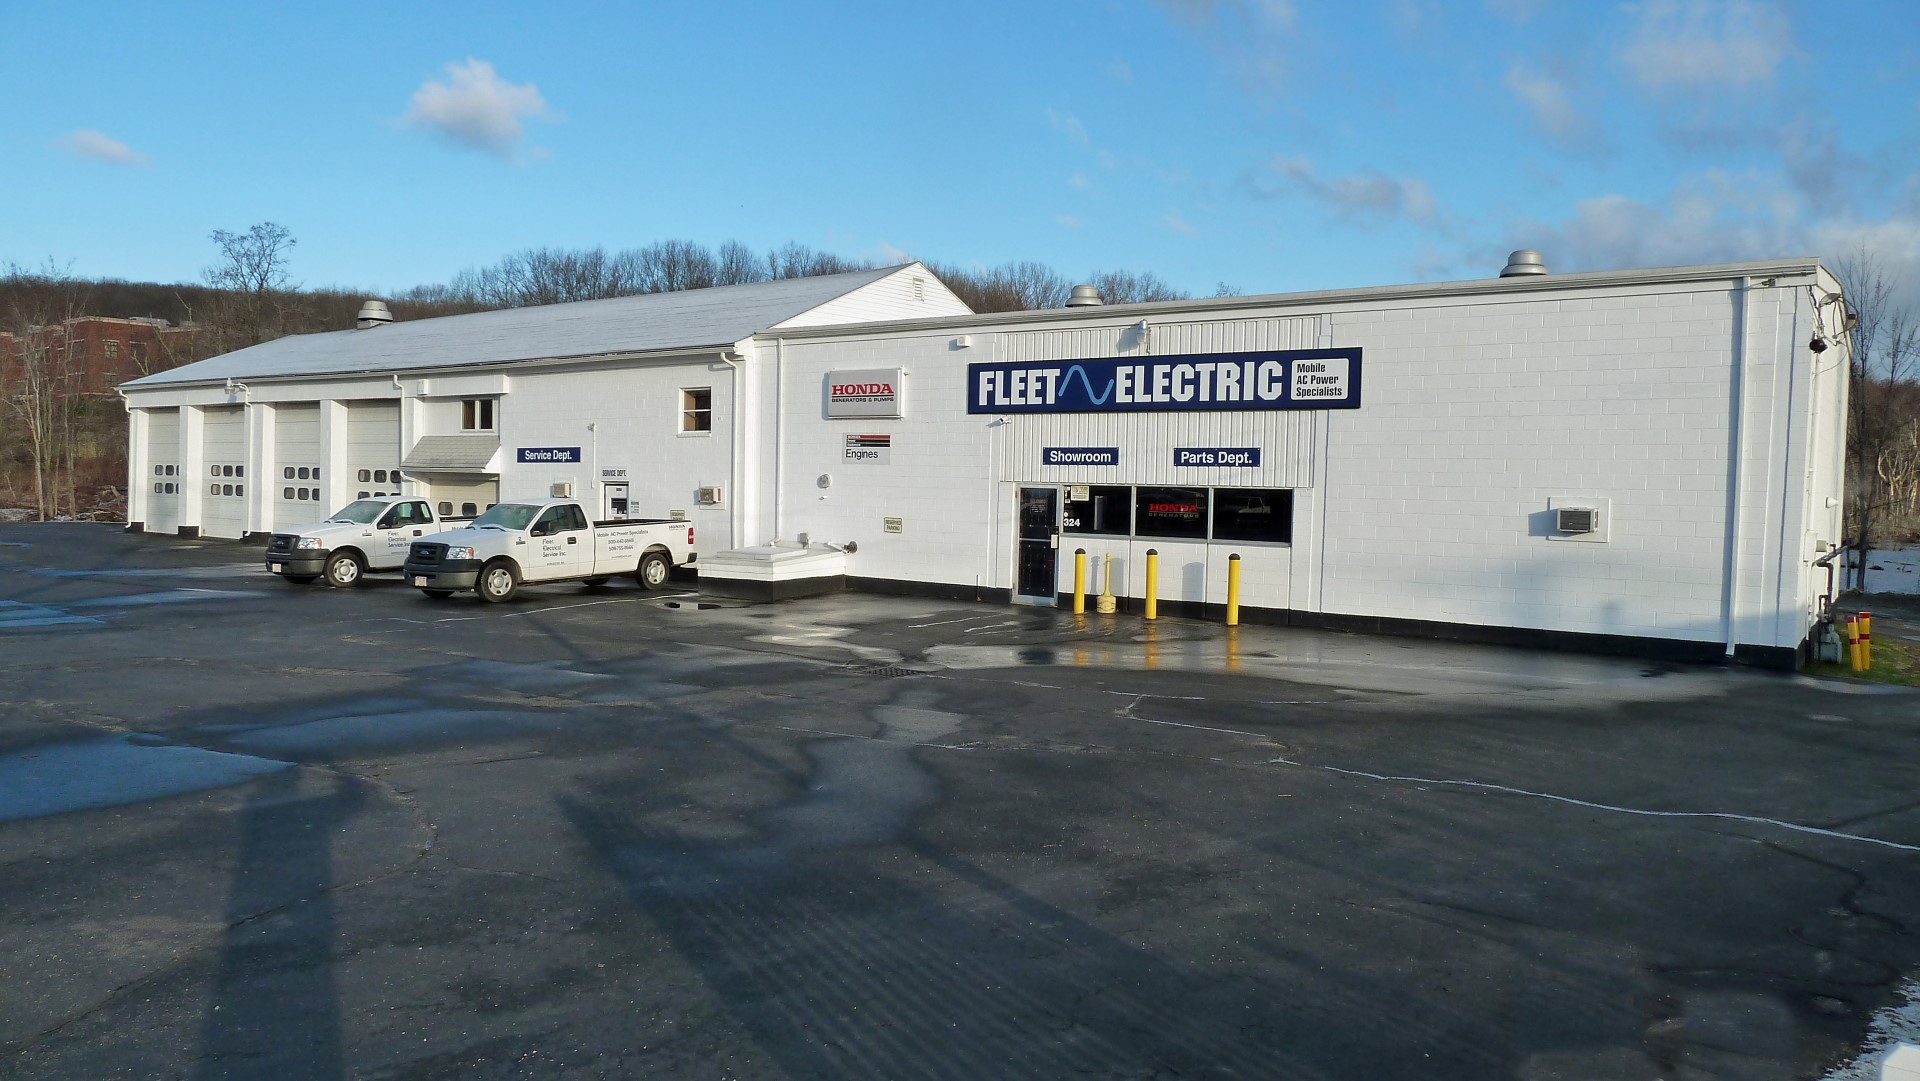 Fleet Electric Worcester, MA